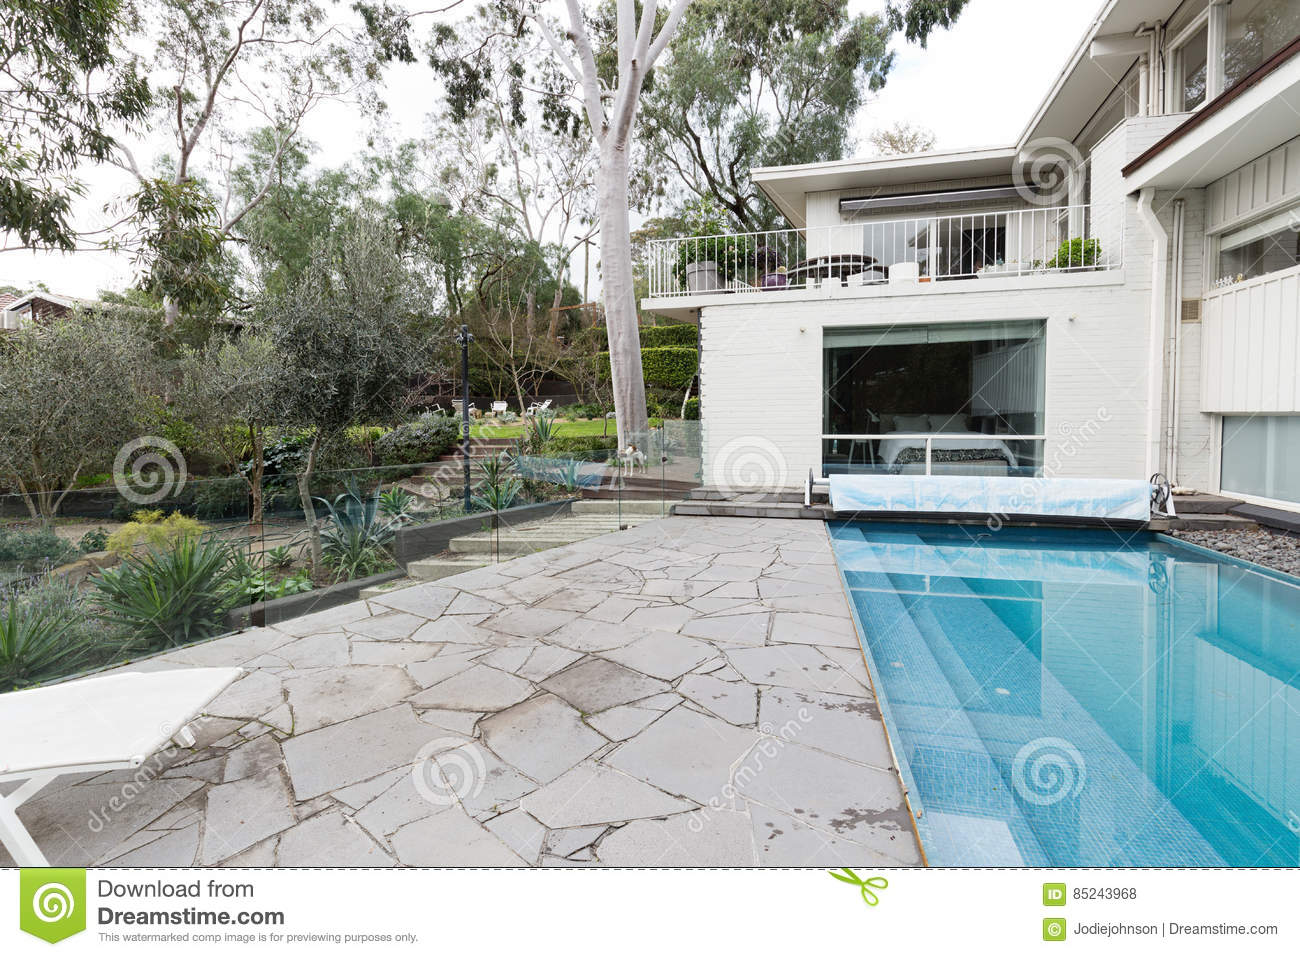 century crazy home mid modern paving pool swimming